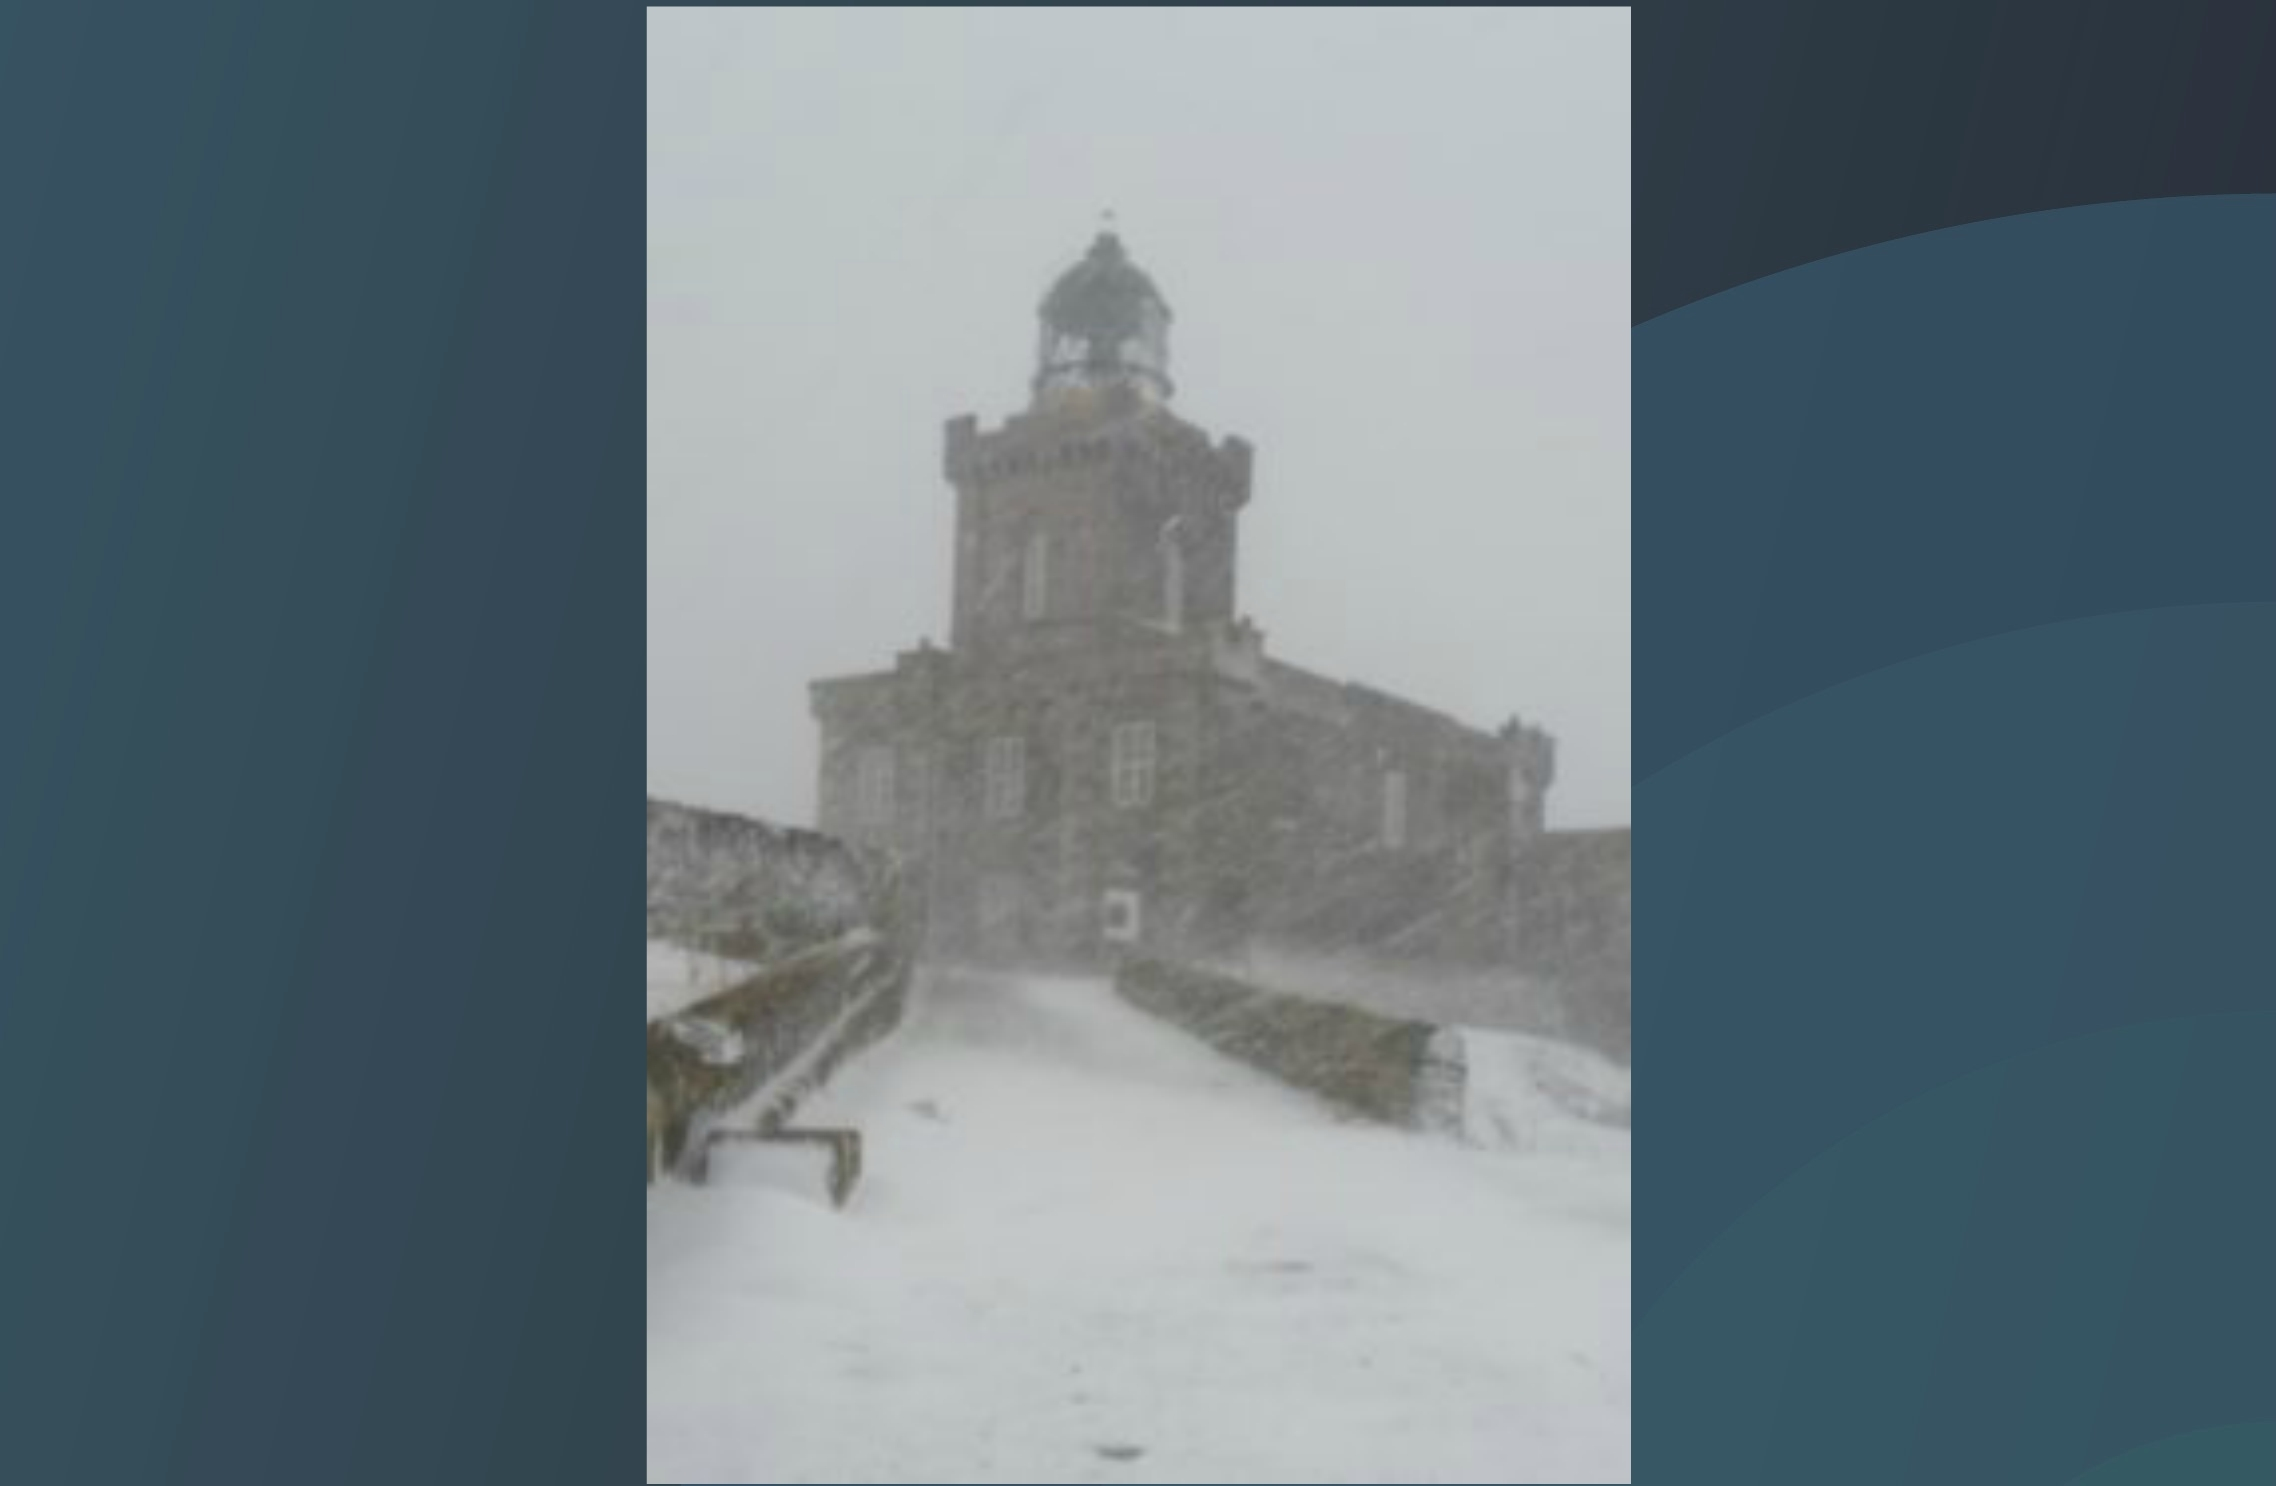 A rare picture of the Isle of May's lighthouse amidst a blizzard as the storm set in on Tuesday